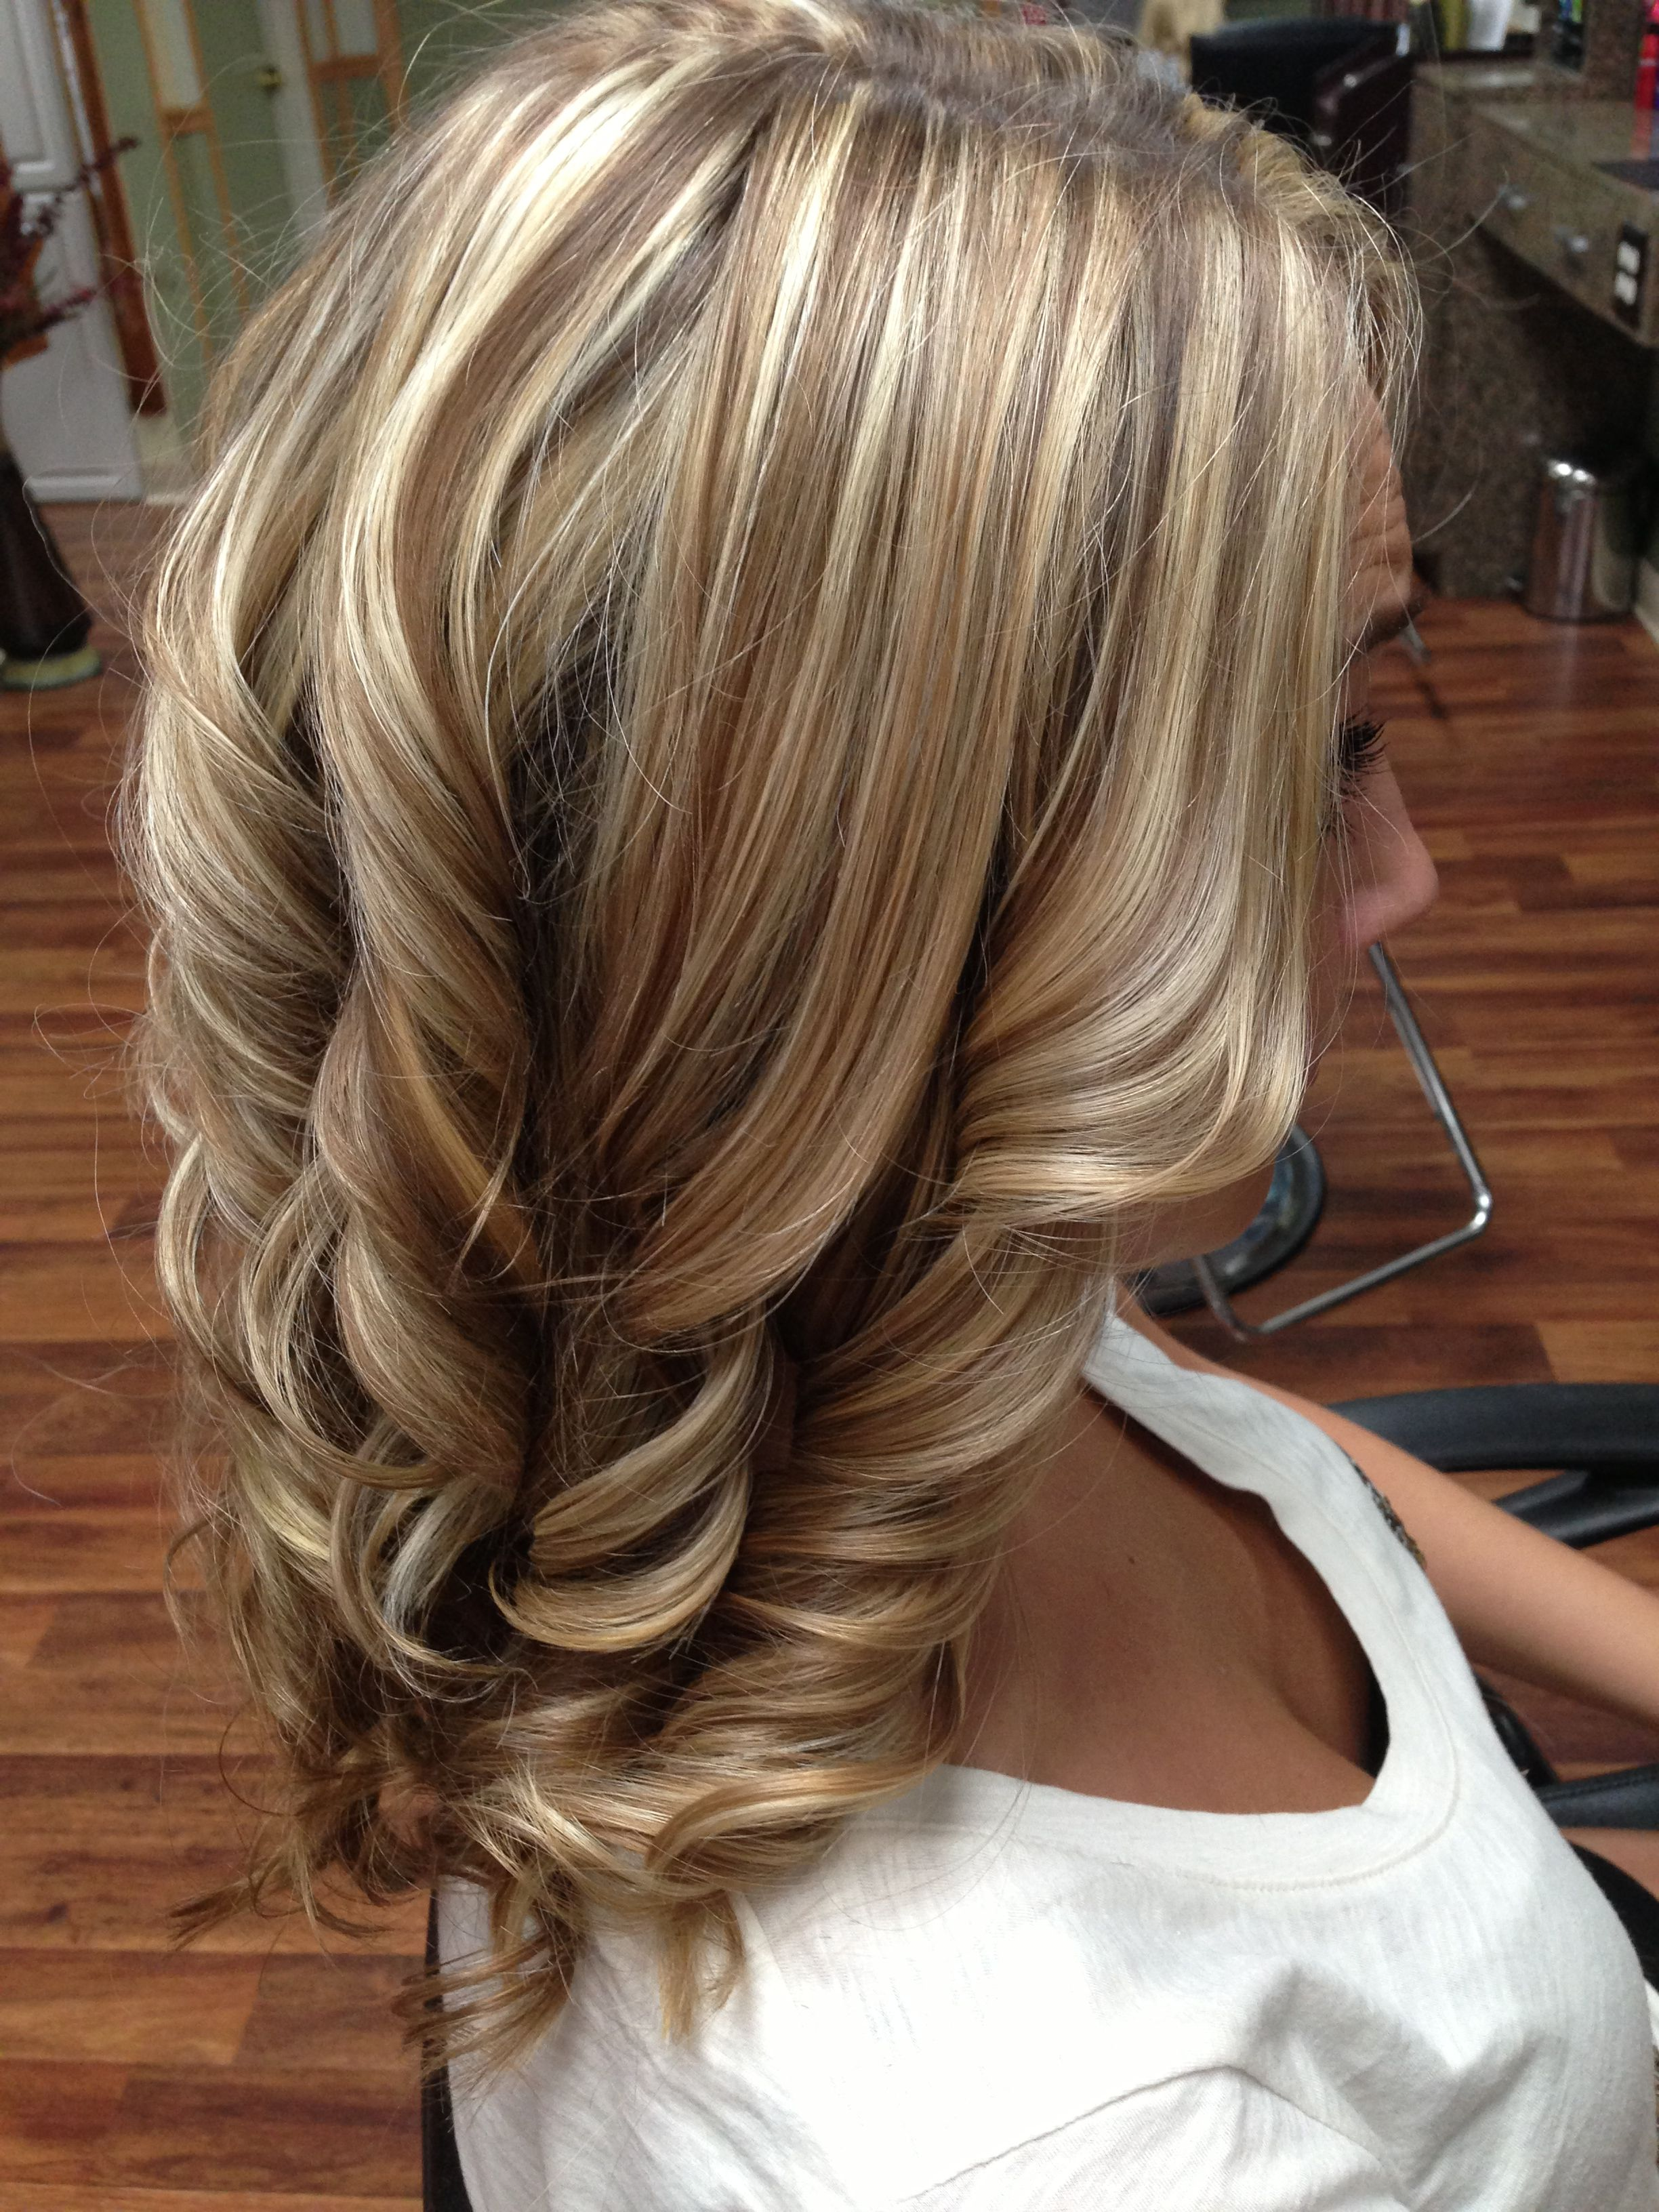 Brown with blonde hair color ideas